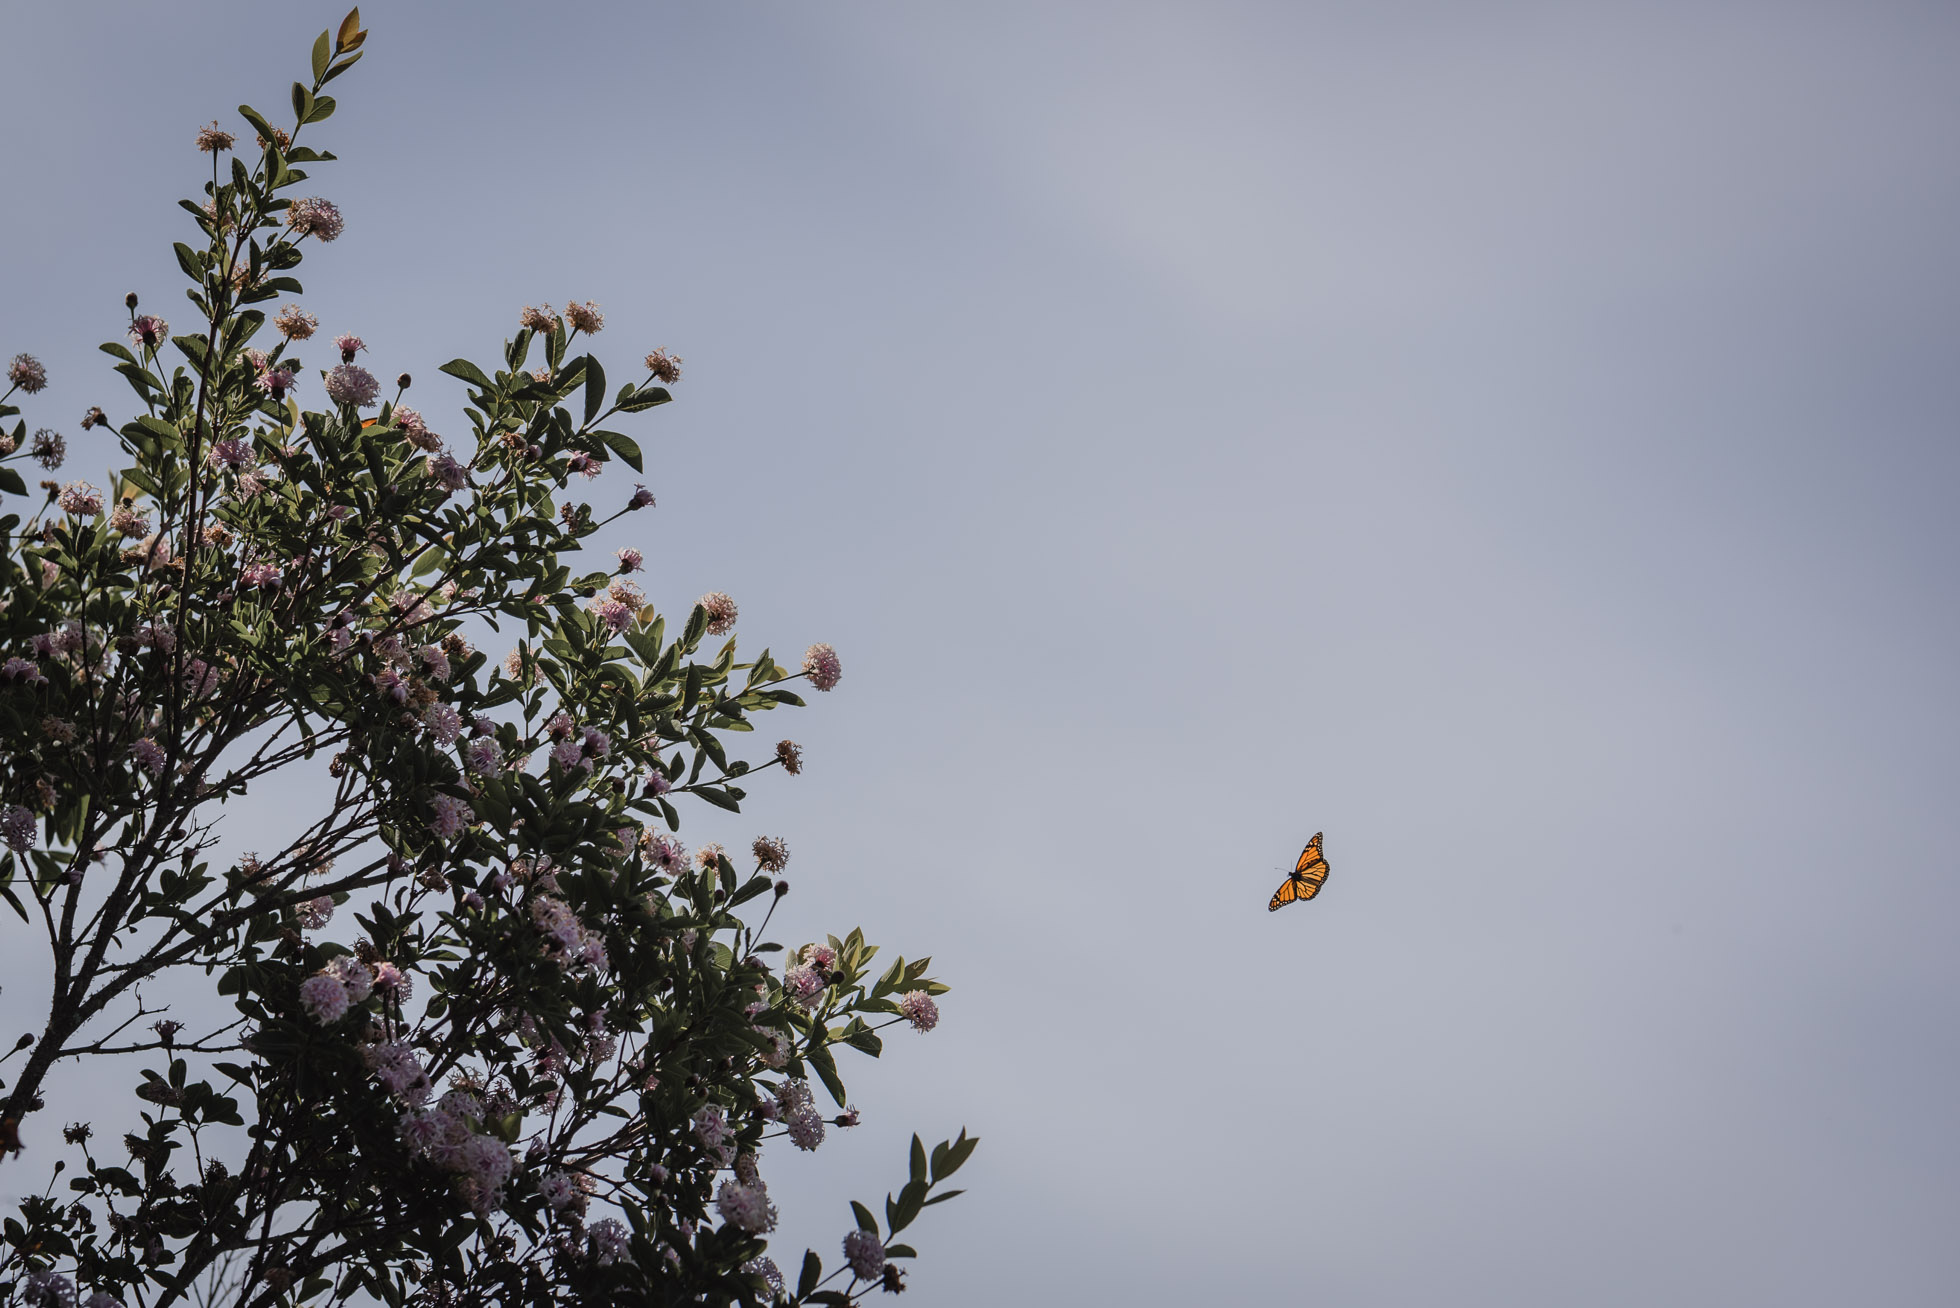 Butterfly in a summer sky by Aimee Glucina